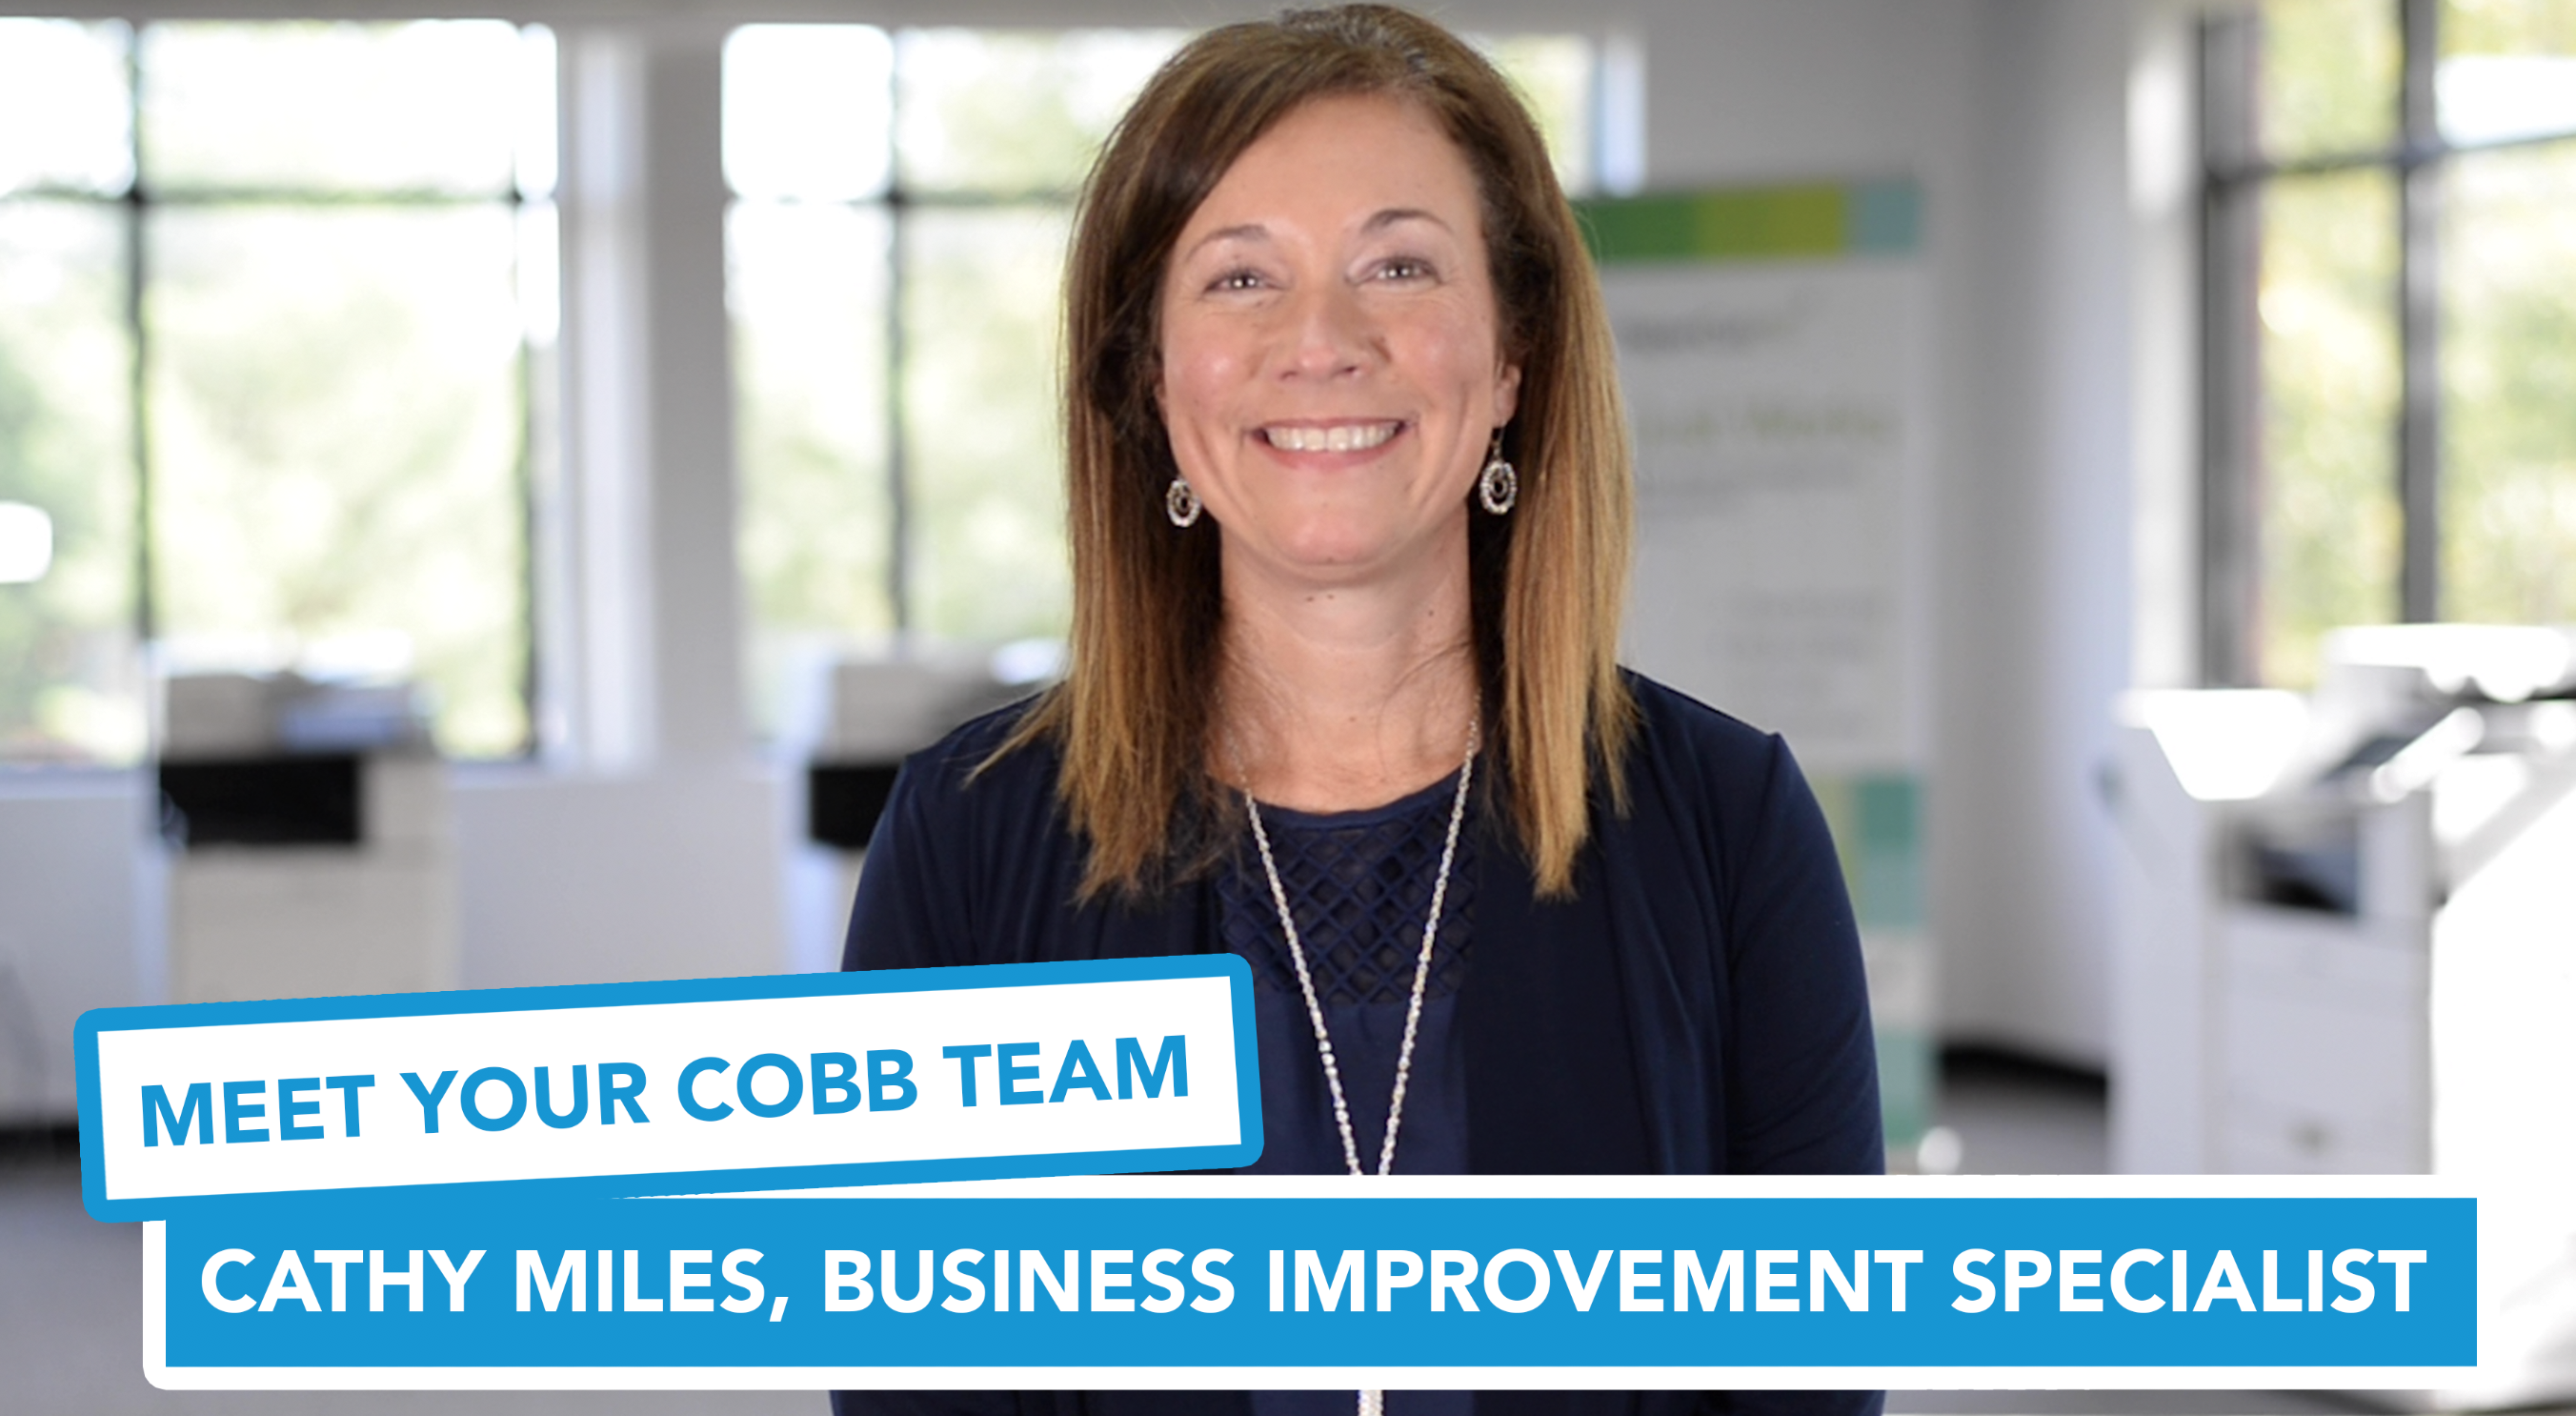 Meet Your Cobb Team: Cathy Miles, Business Improvement Specialist